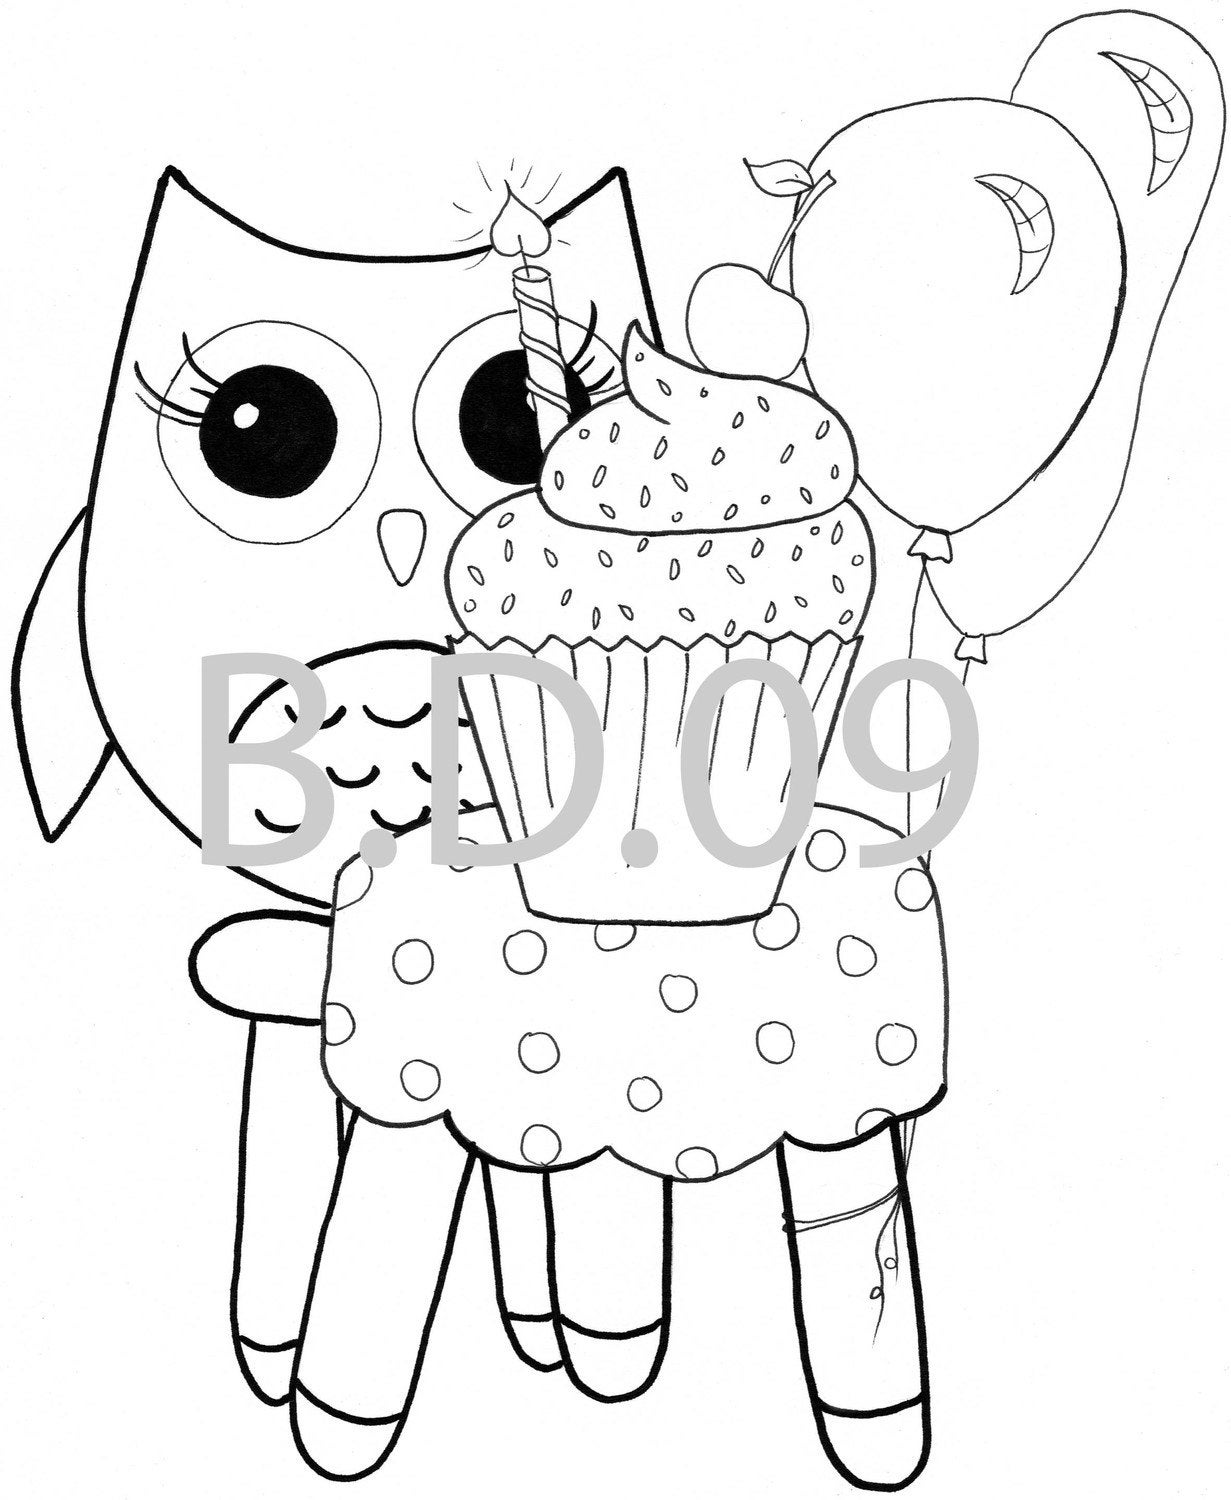 Coloring pages Owl Themed 10 pc